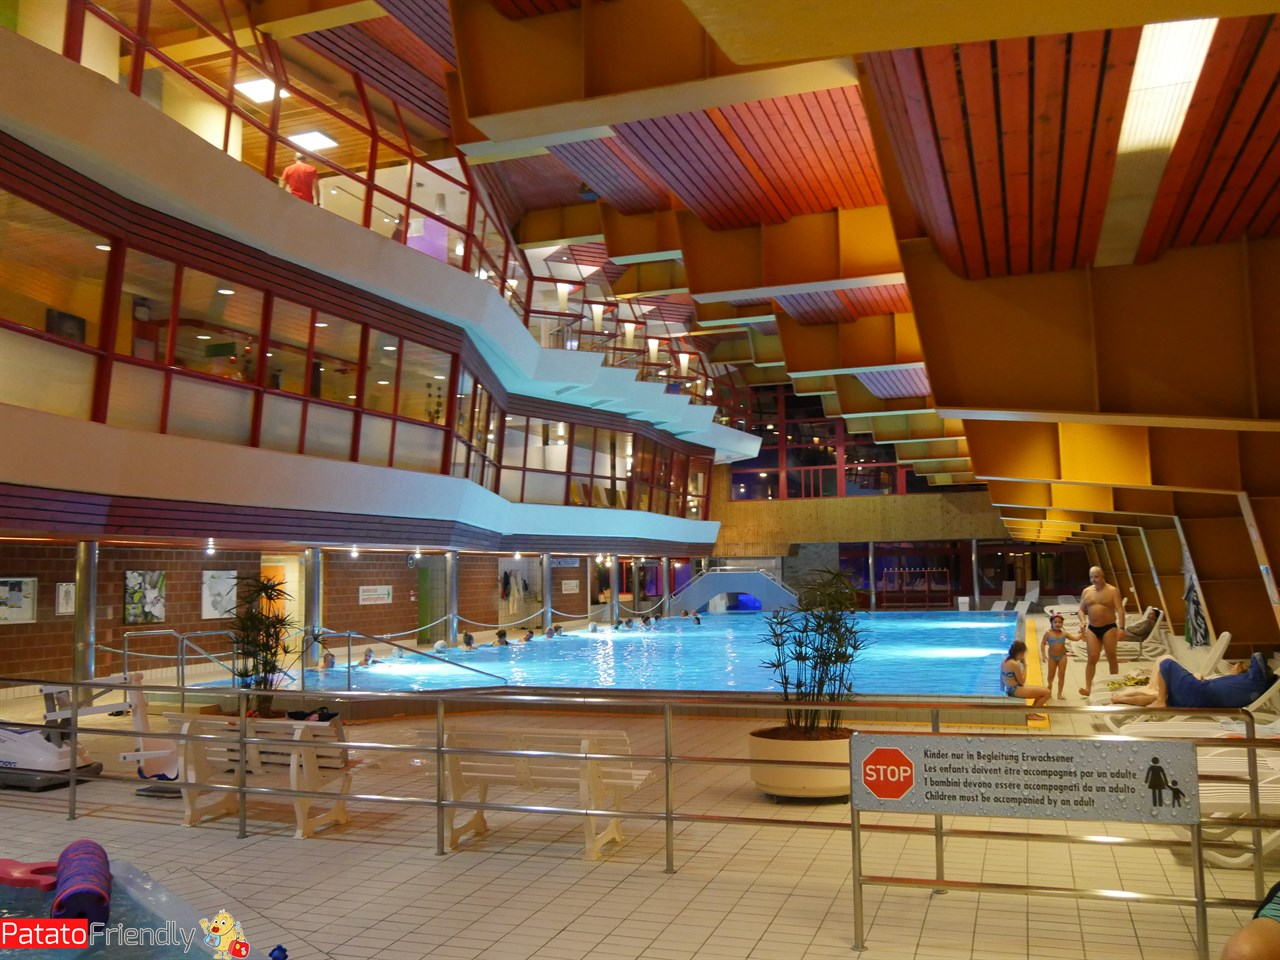 [cml_media_alt id='13393']Le terme di Leukerbad[/cml_media_alt]